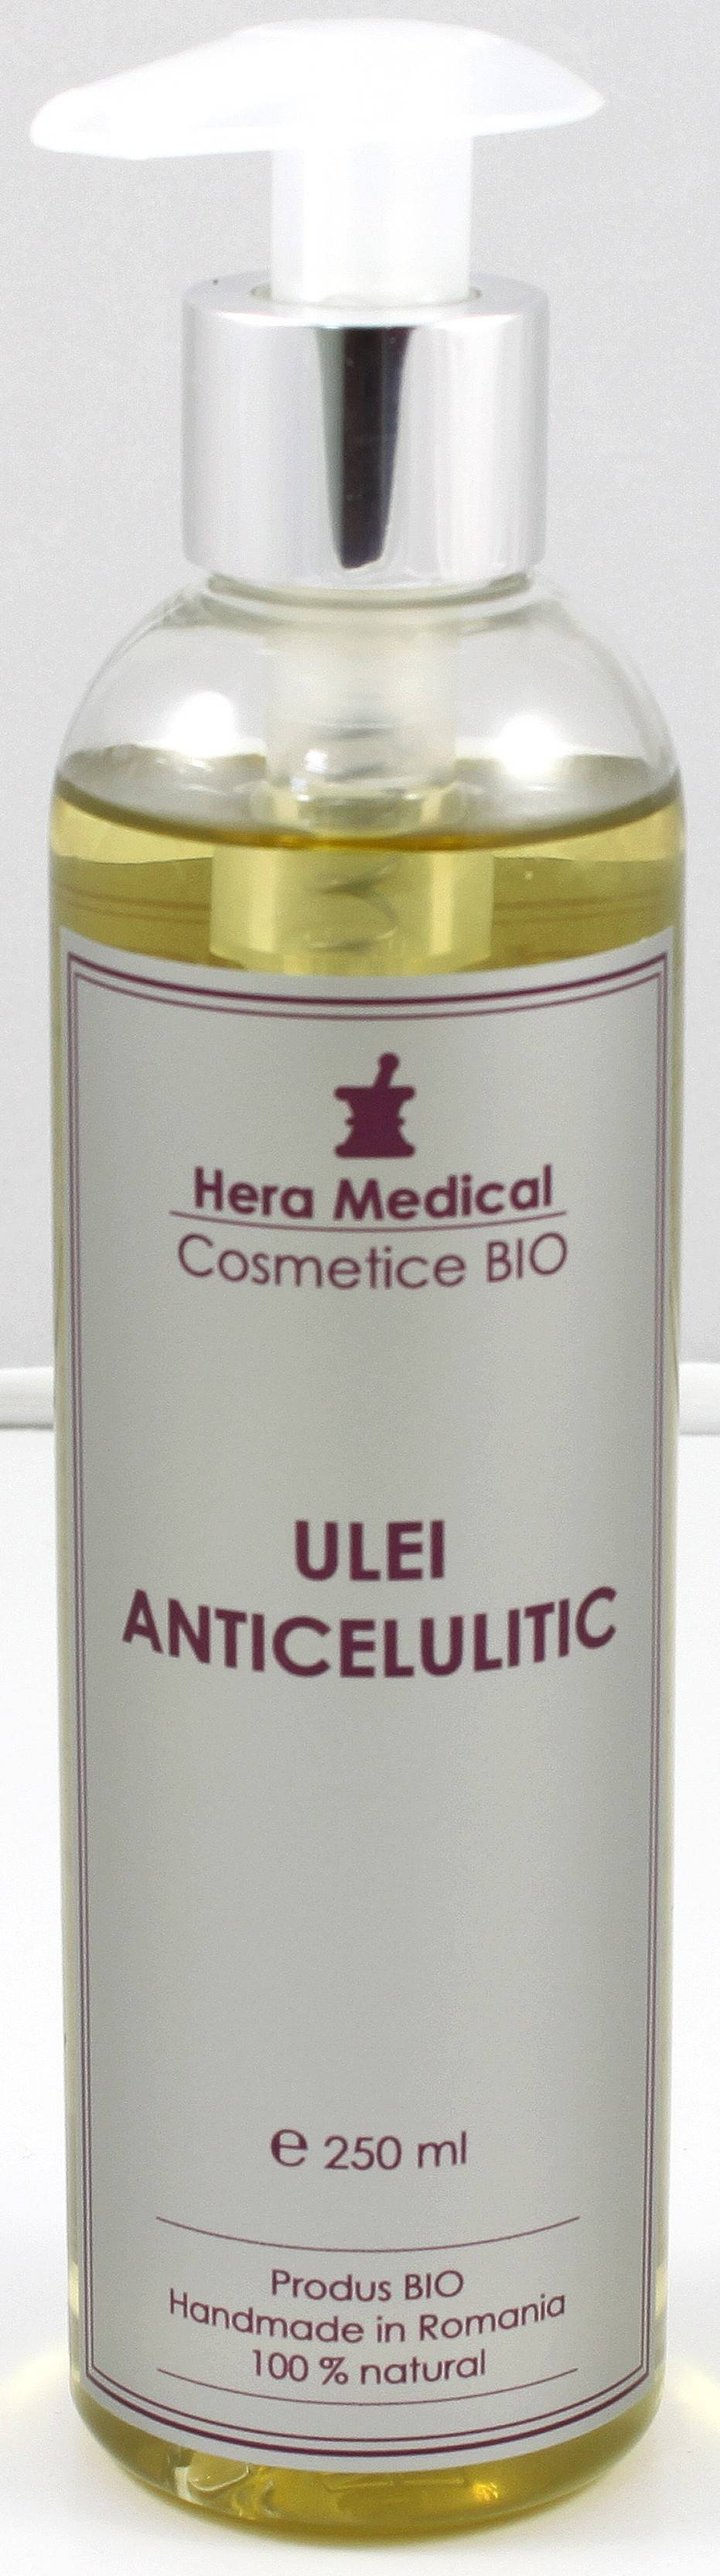 ULEI ANTICELULITA 250 ML